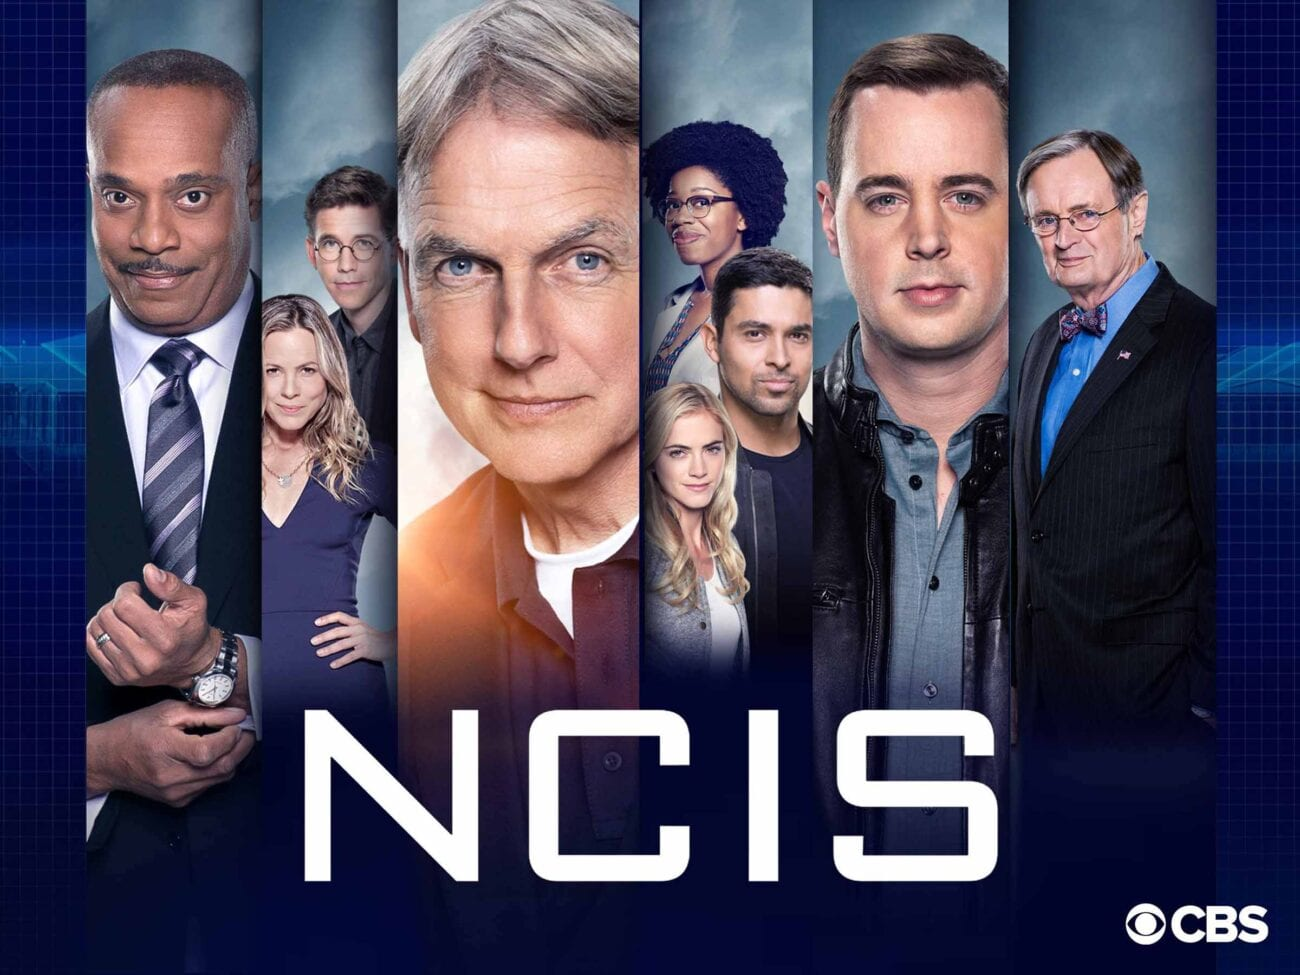 'NCIS' has been topping ratings for years, but the quality has been a slippery slope. After a mediocre season 17, it's time for the crime drama to retire.